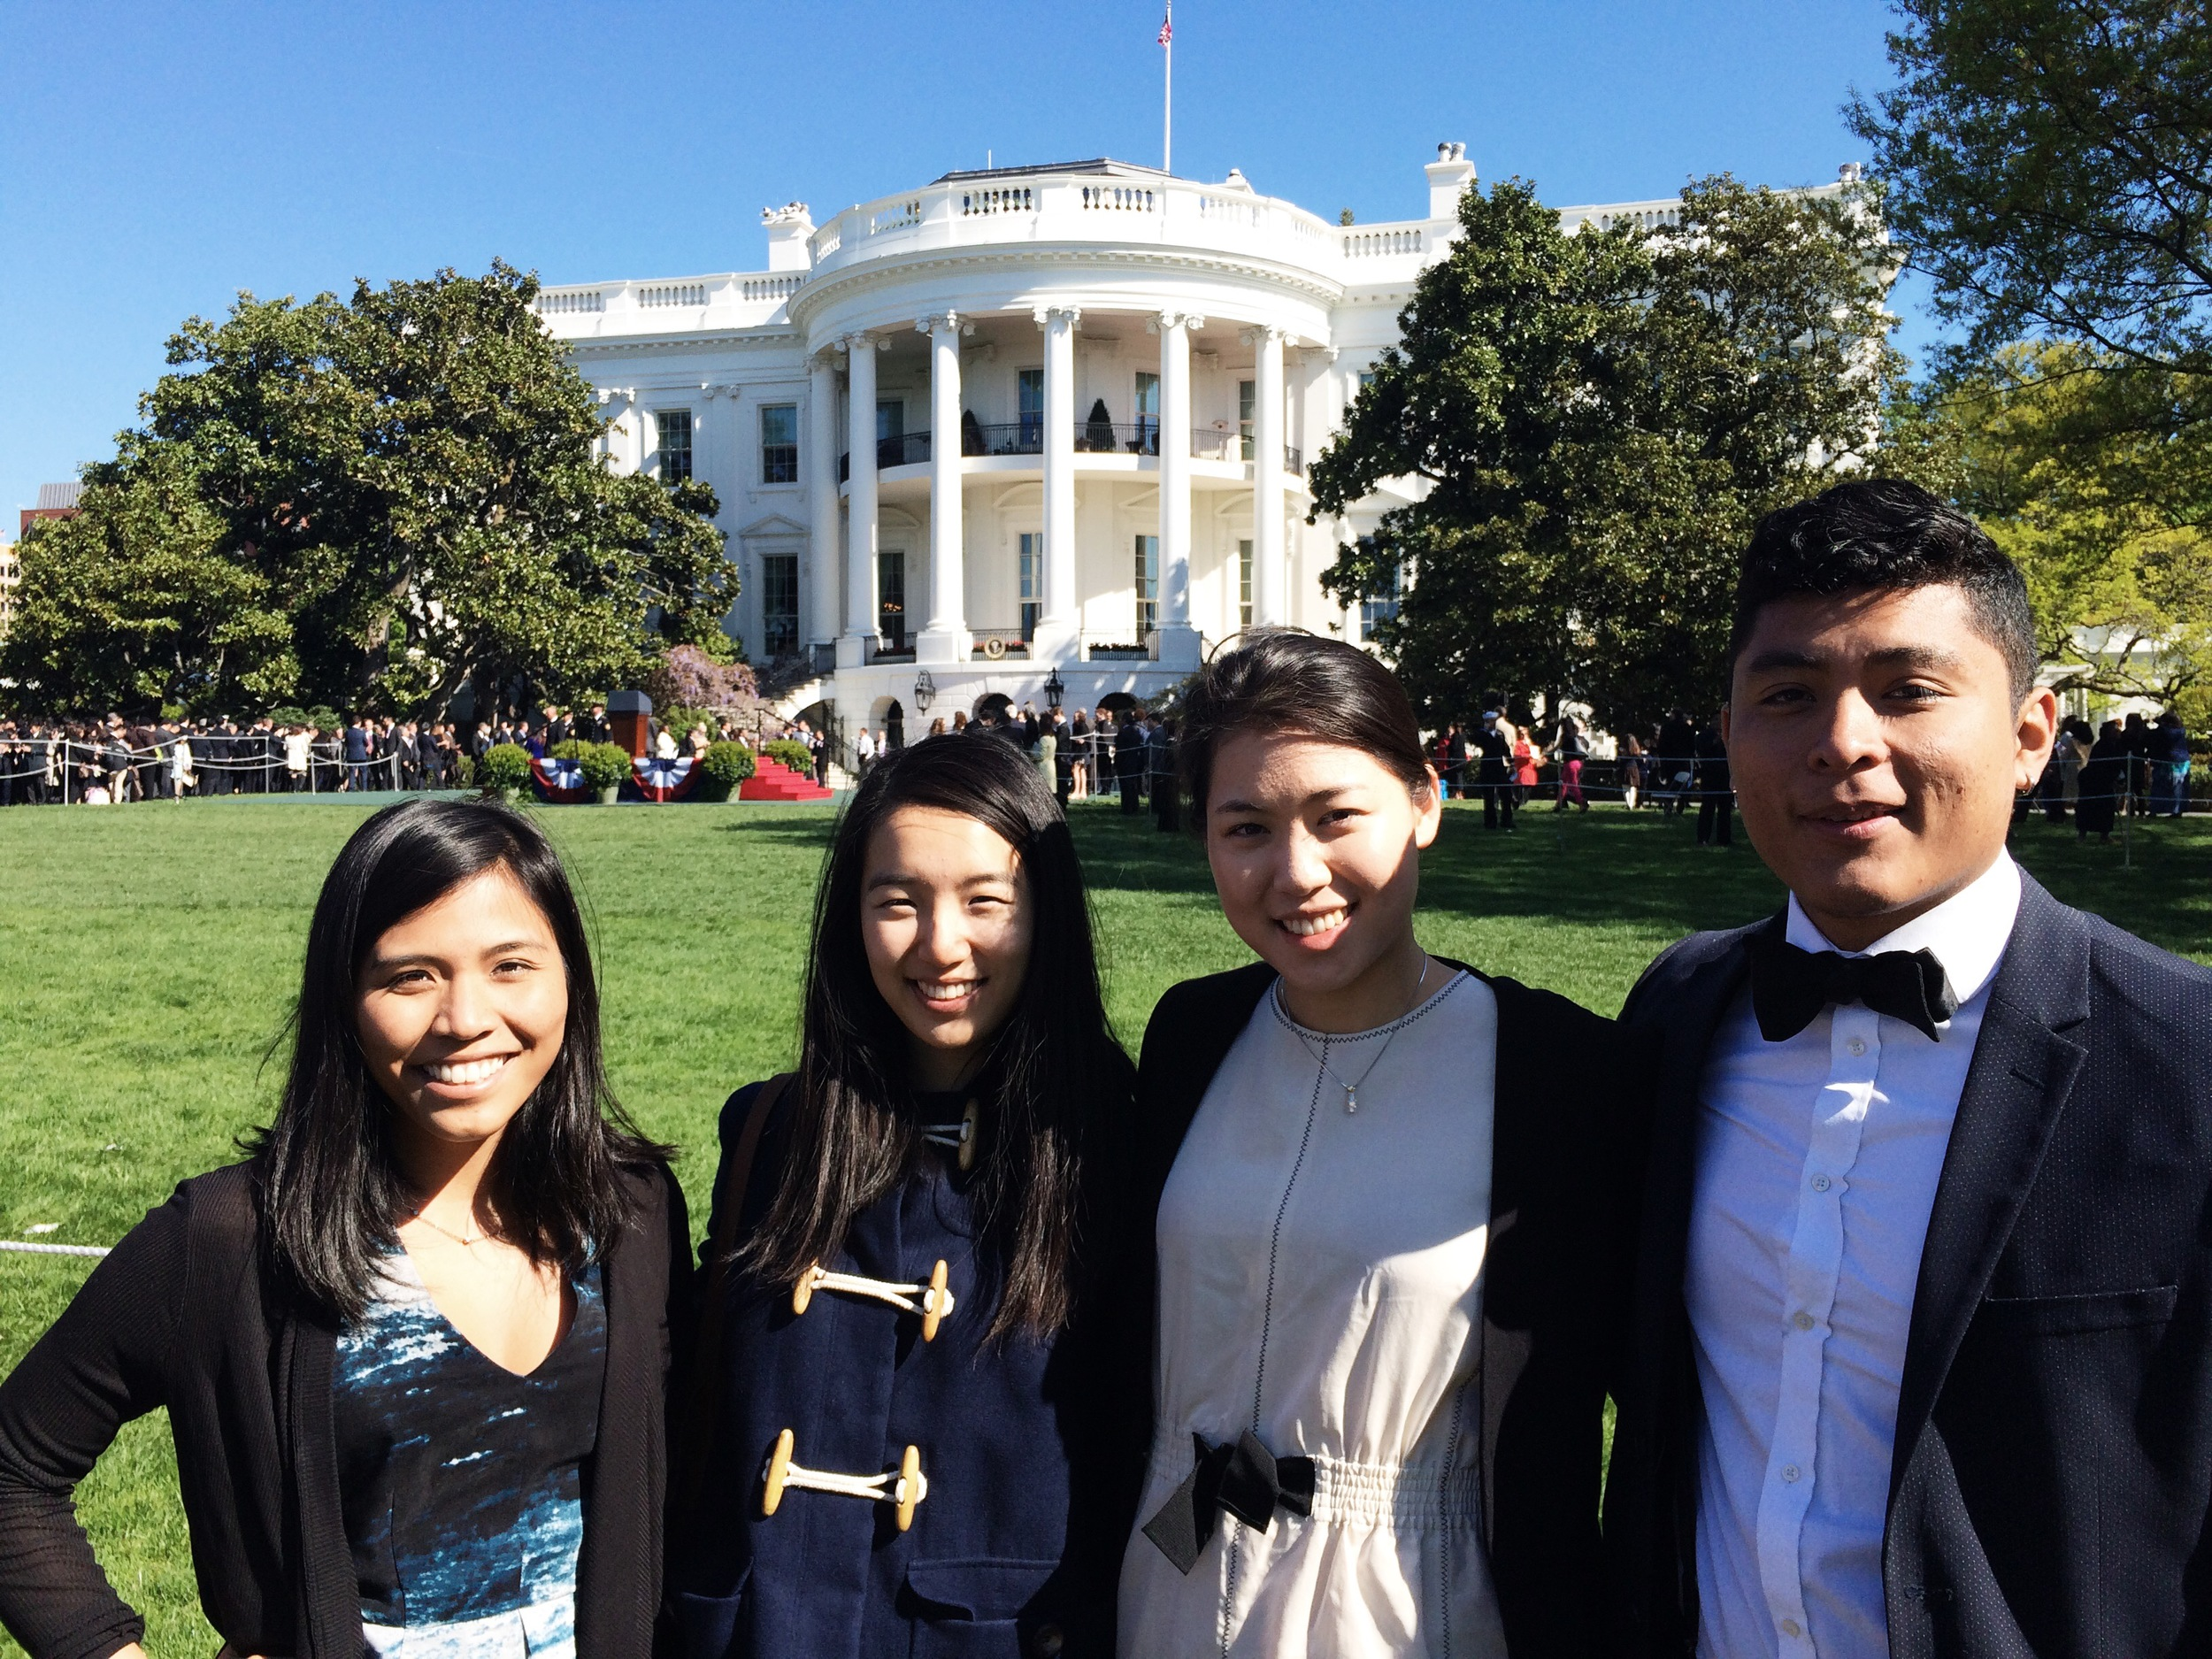 Me and my fellow interns on the South Lawn